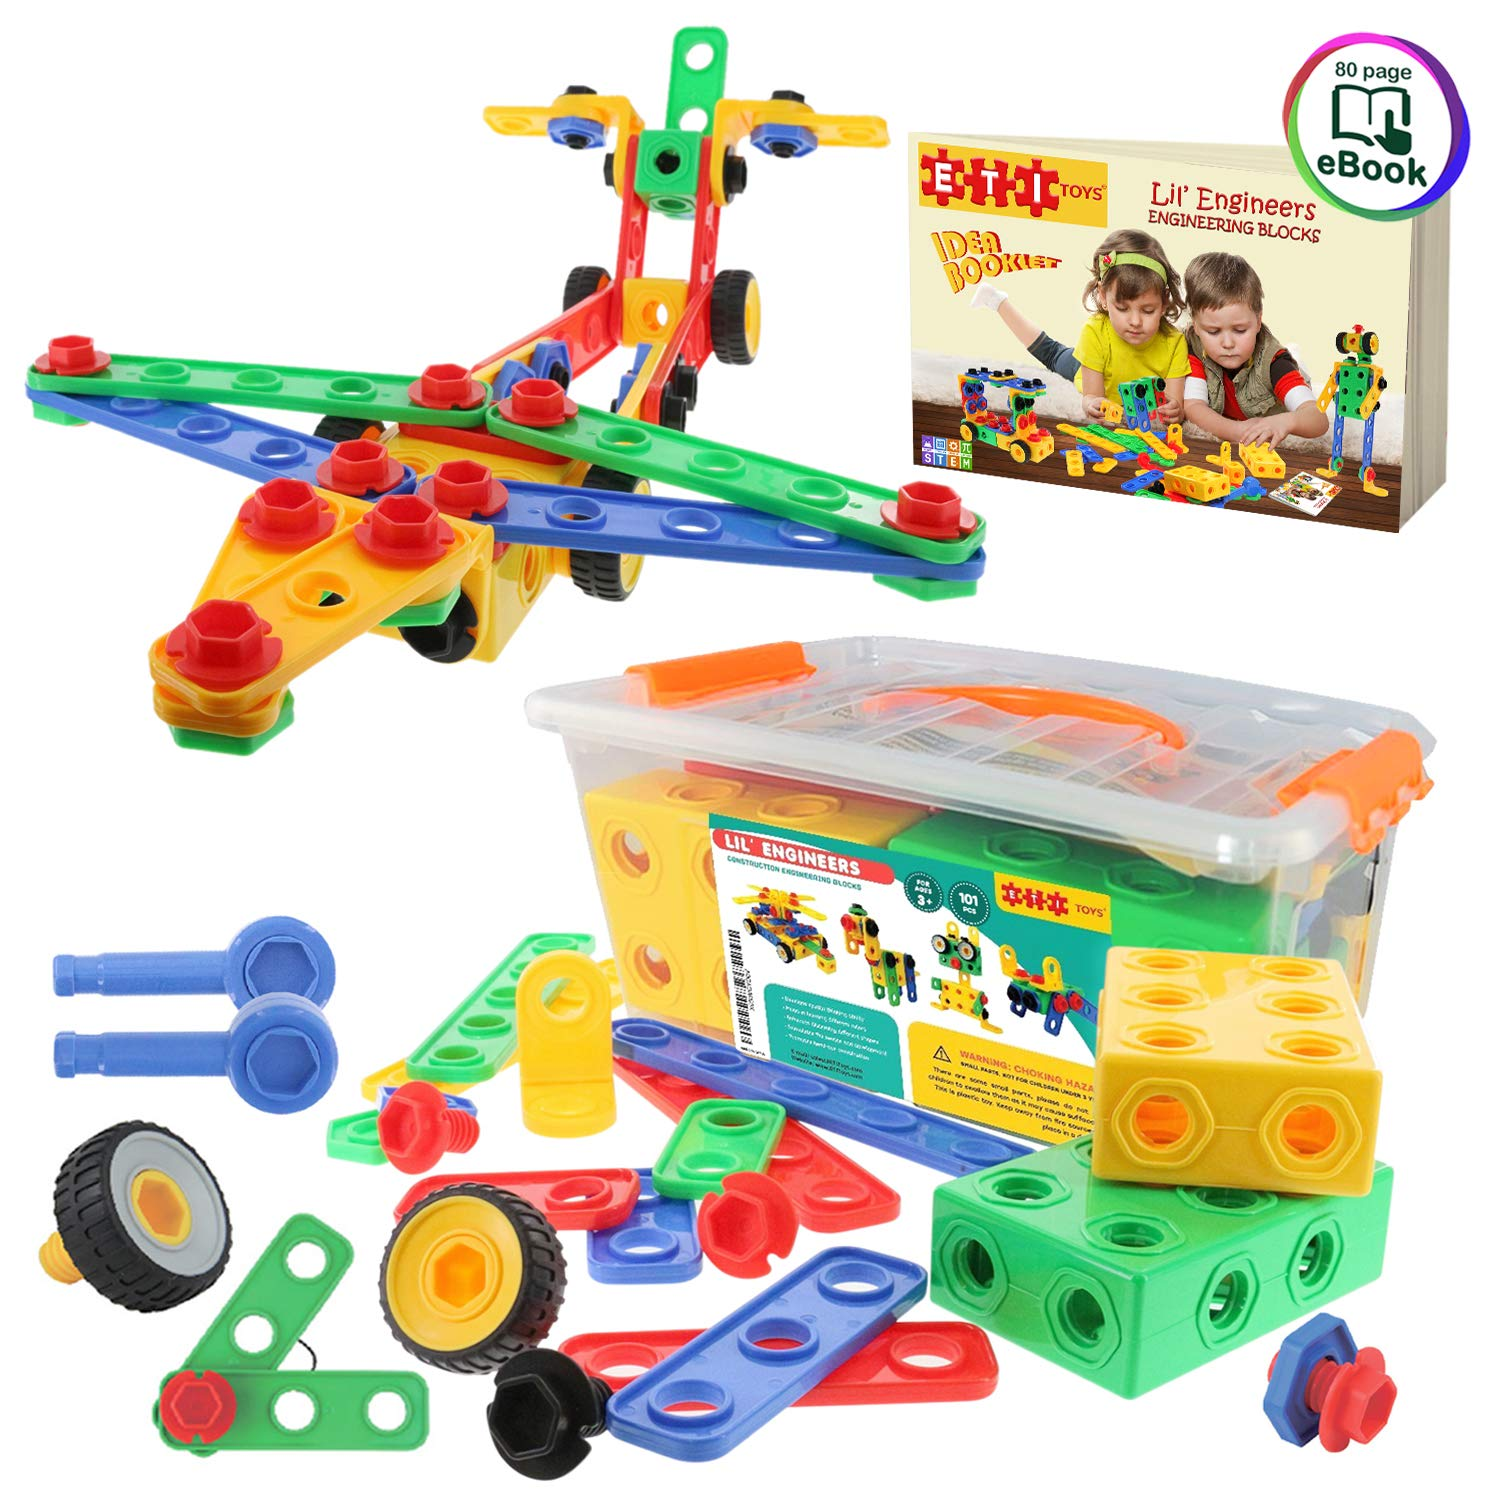 101 Piece STEM Toys KitEducational Construction Engineering Building Block...